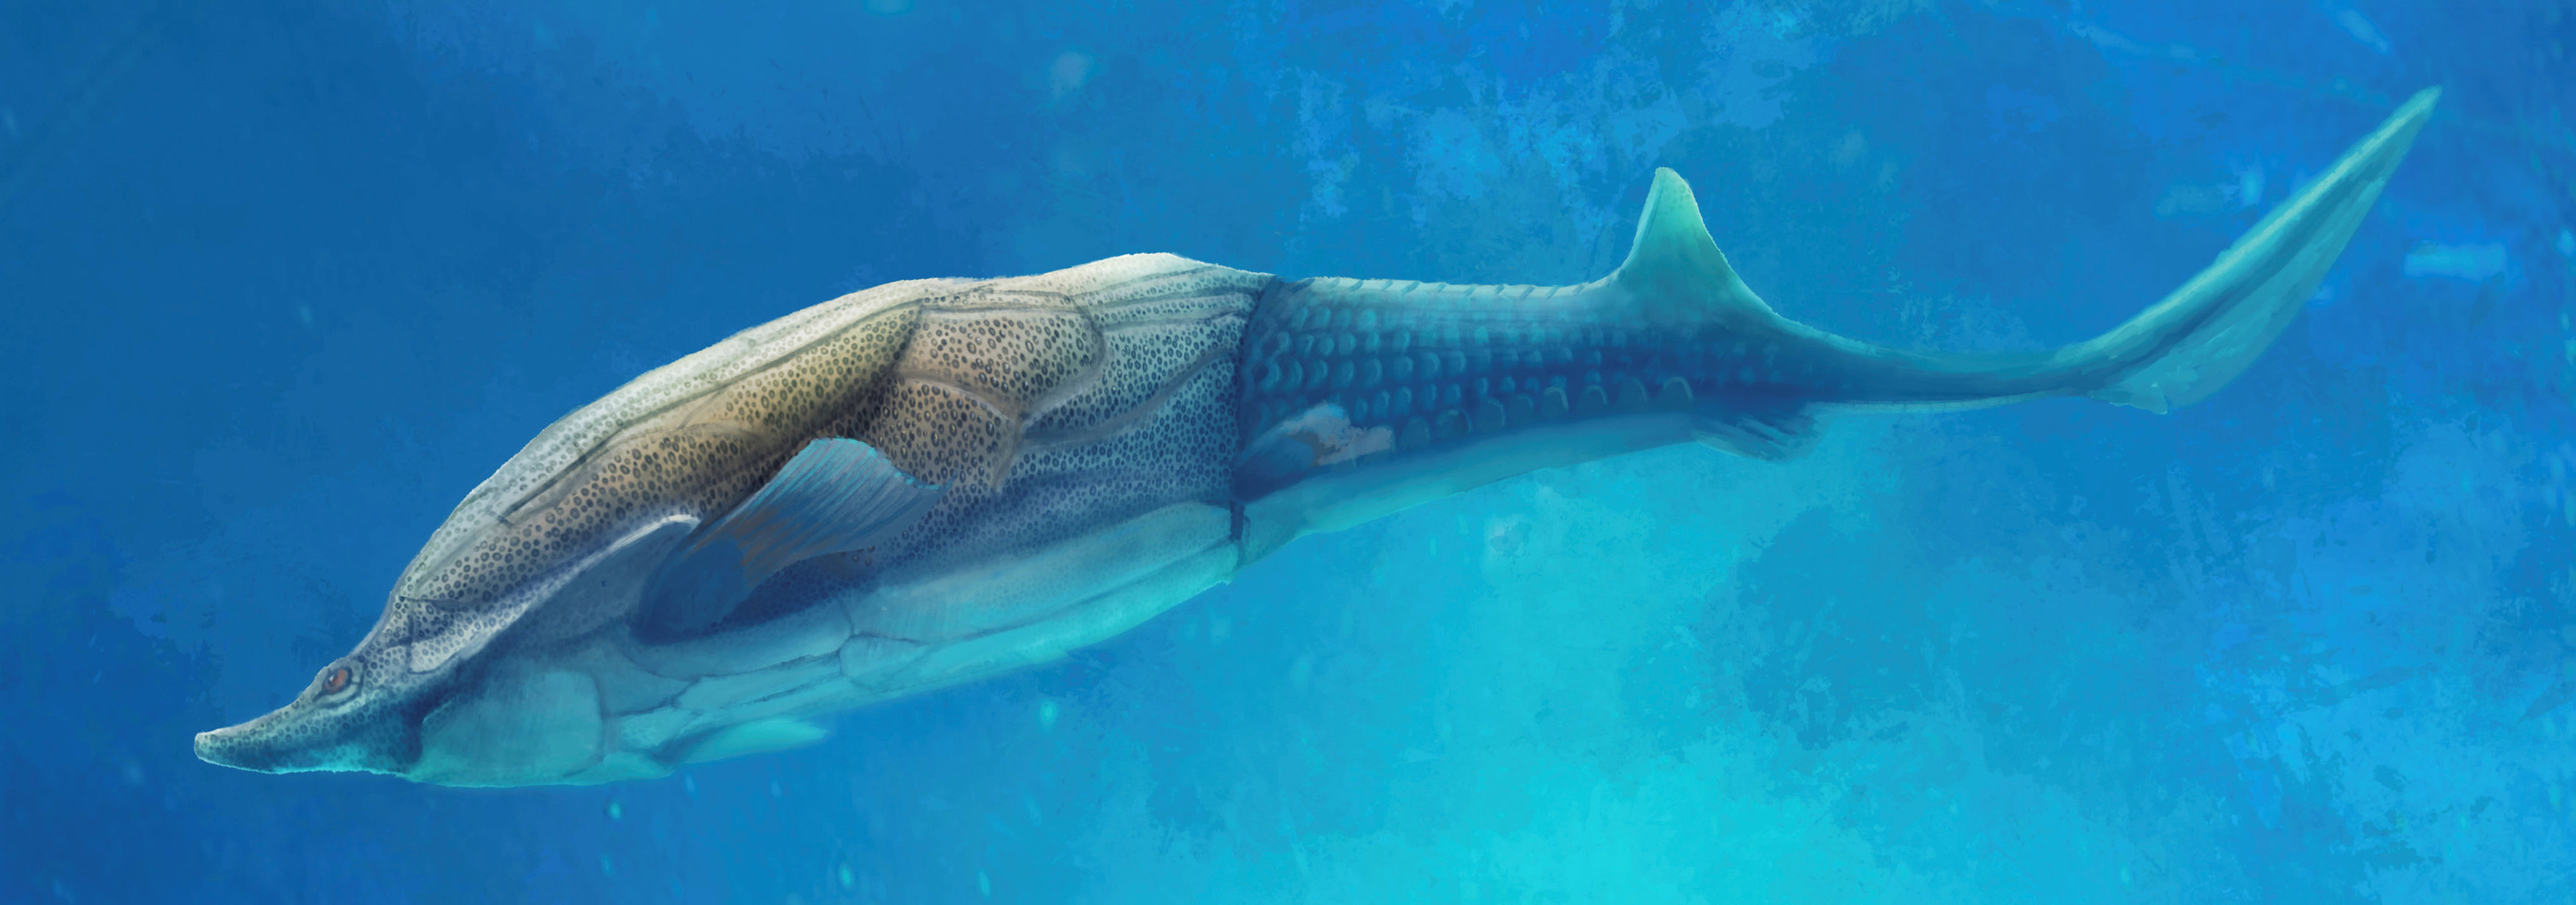 This illustration shows the fish called Qilinyu, which lived 423 million years ago during the Silurian Period. | REUTERS